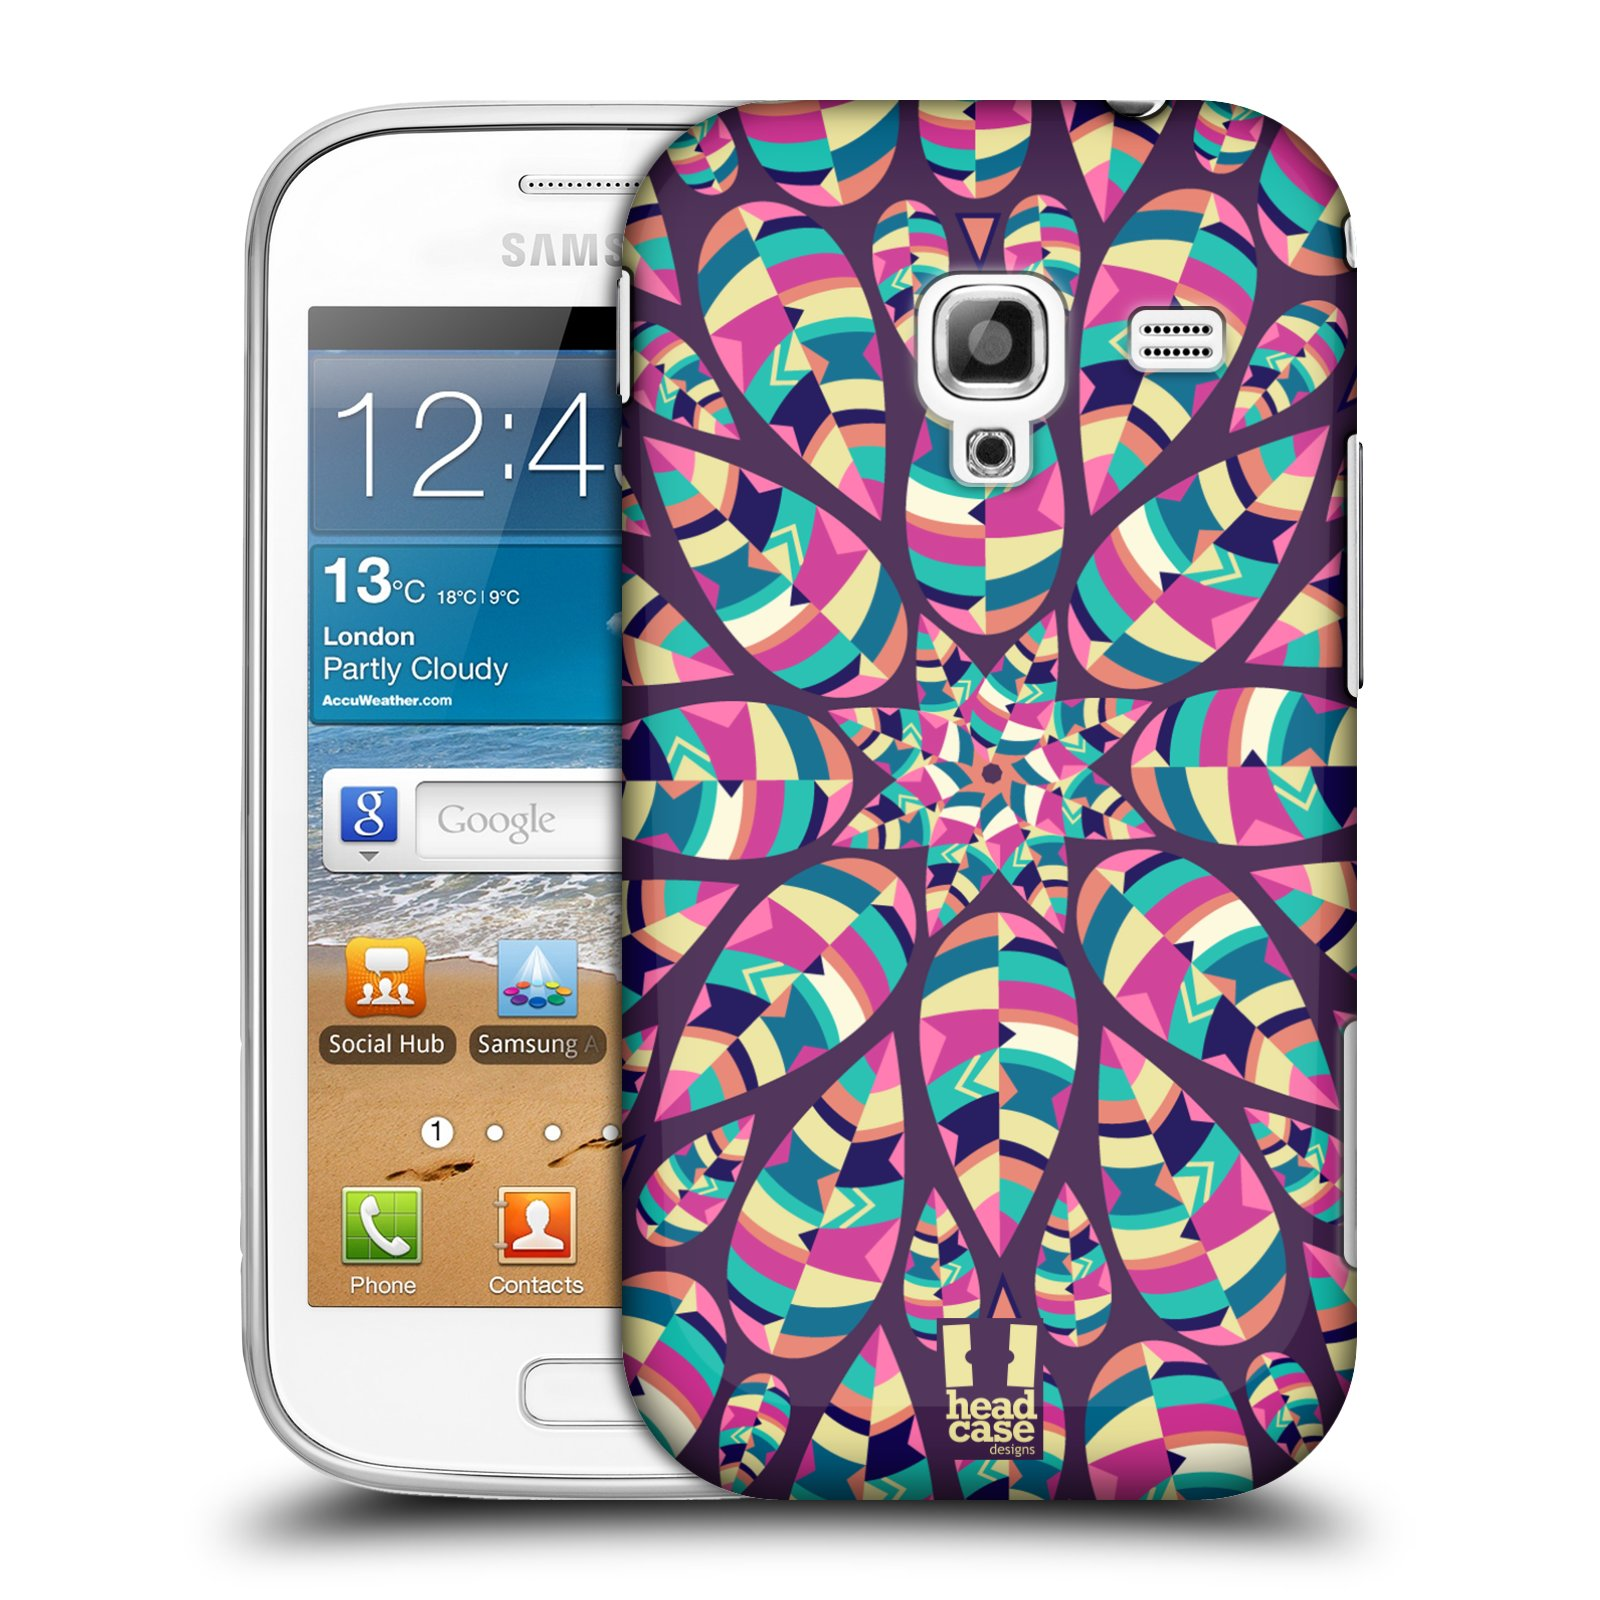 HEAD CASE DESIGNS LEAF PATTERNS 2 CASE COVER FOR SAMSUNG GALAXY ACE 2 I8160